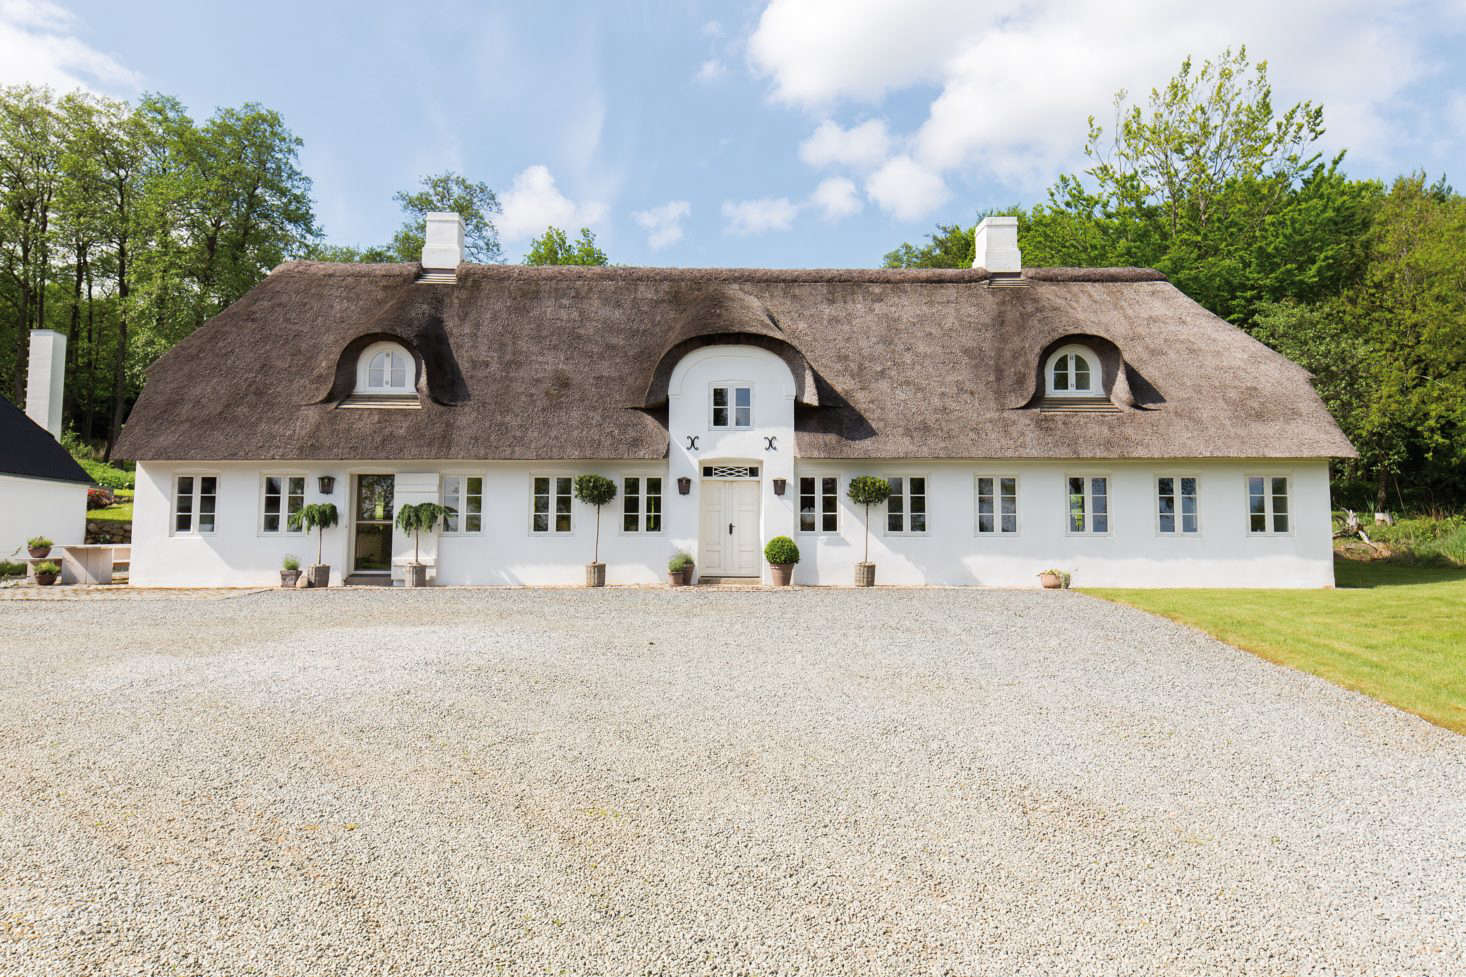 The Dinesen Family House: A Historic Renovation for Danish Design Royalty